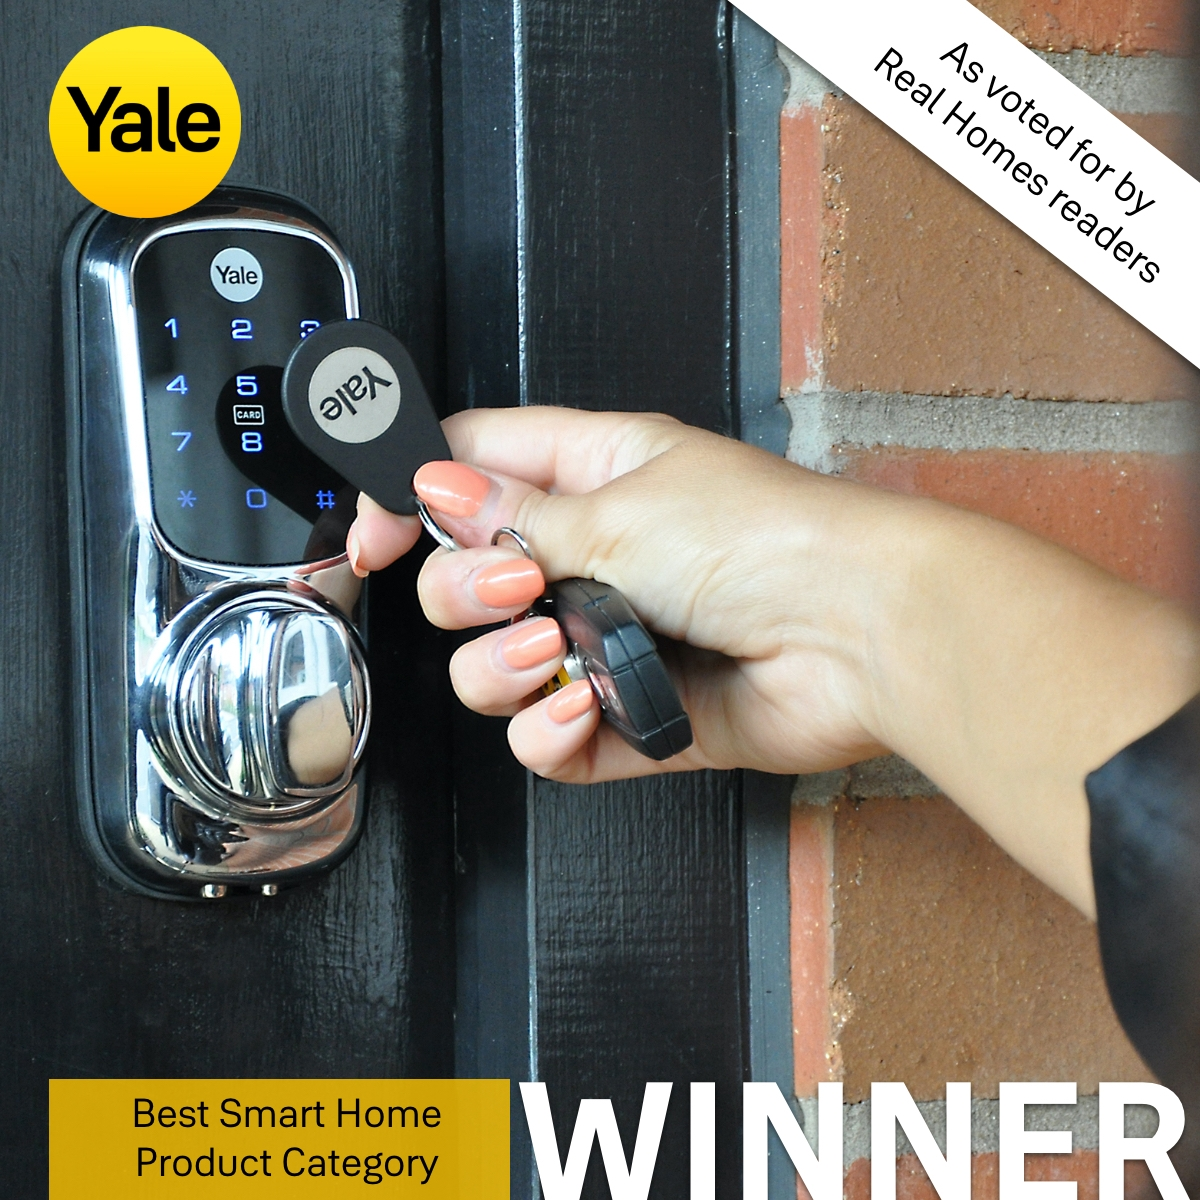 Keyless smart lock wins award